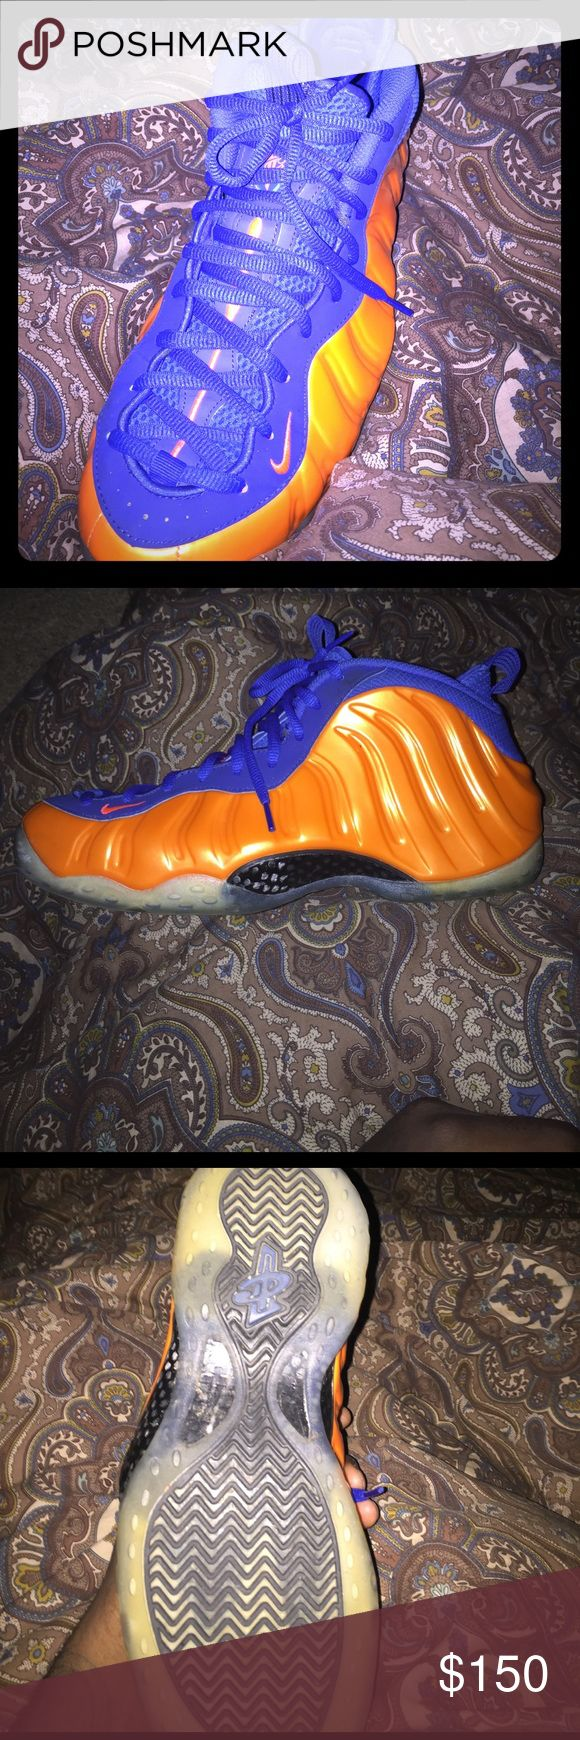 New York Knicks Nike foamposite Never wore them good price compared to everyone else. Nike Shoes Sneakers